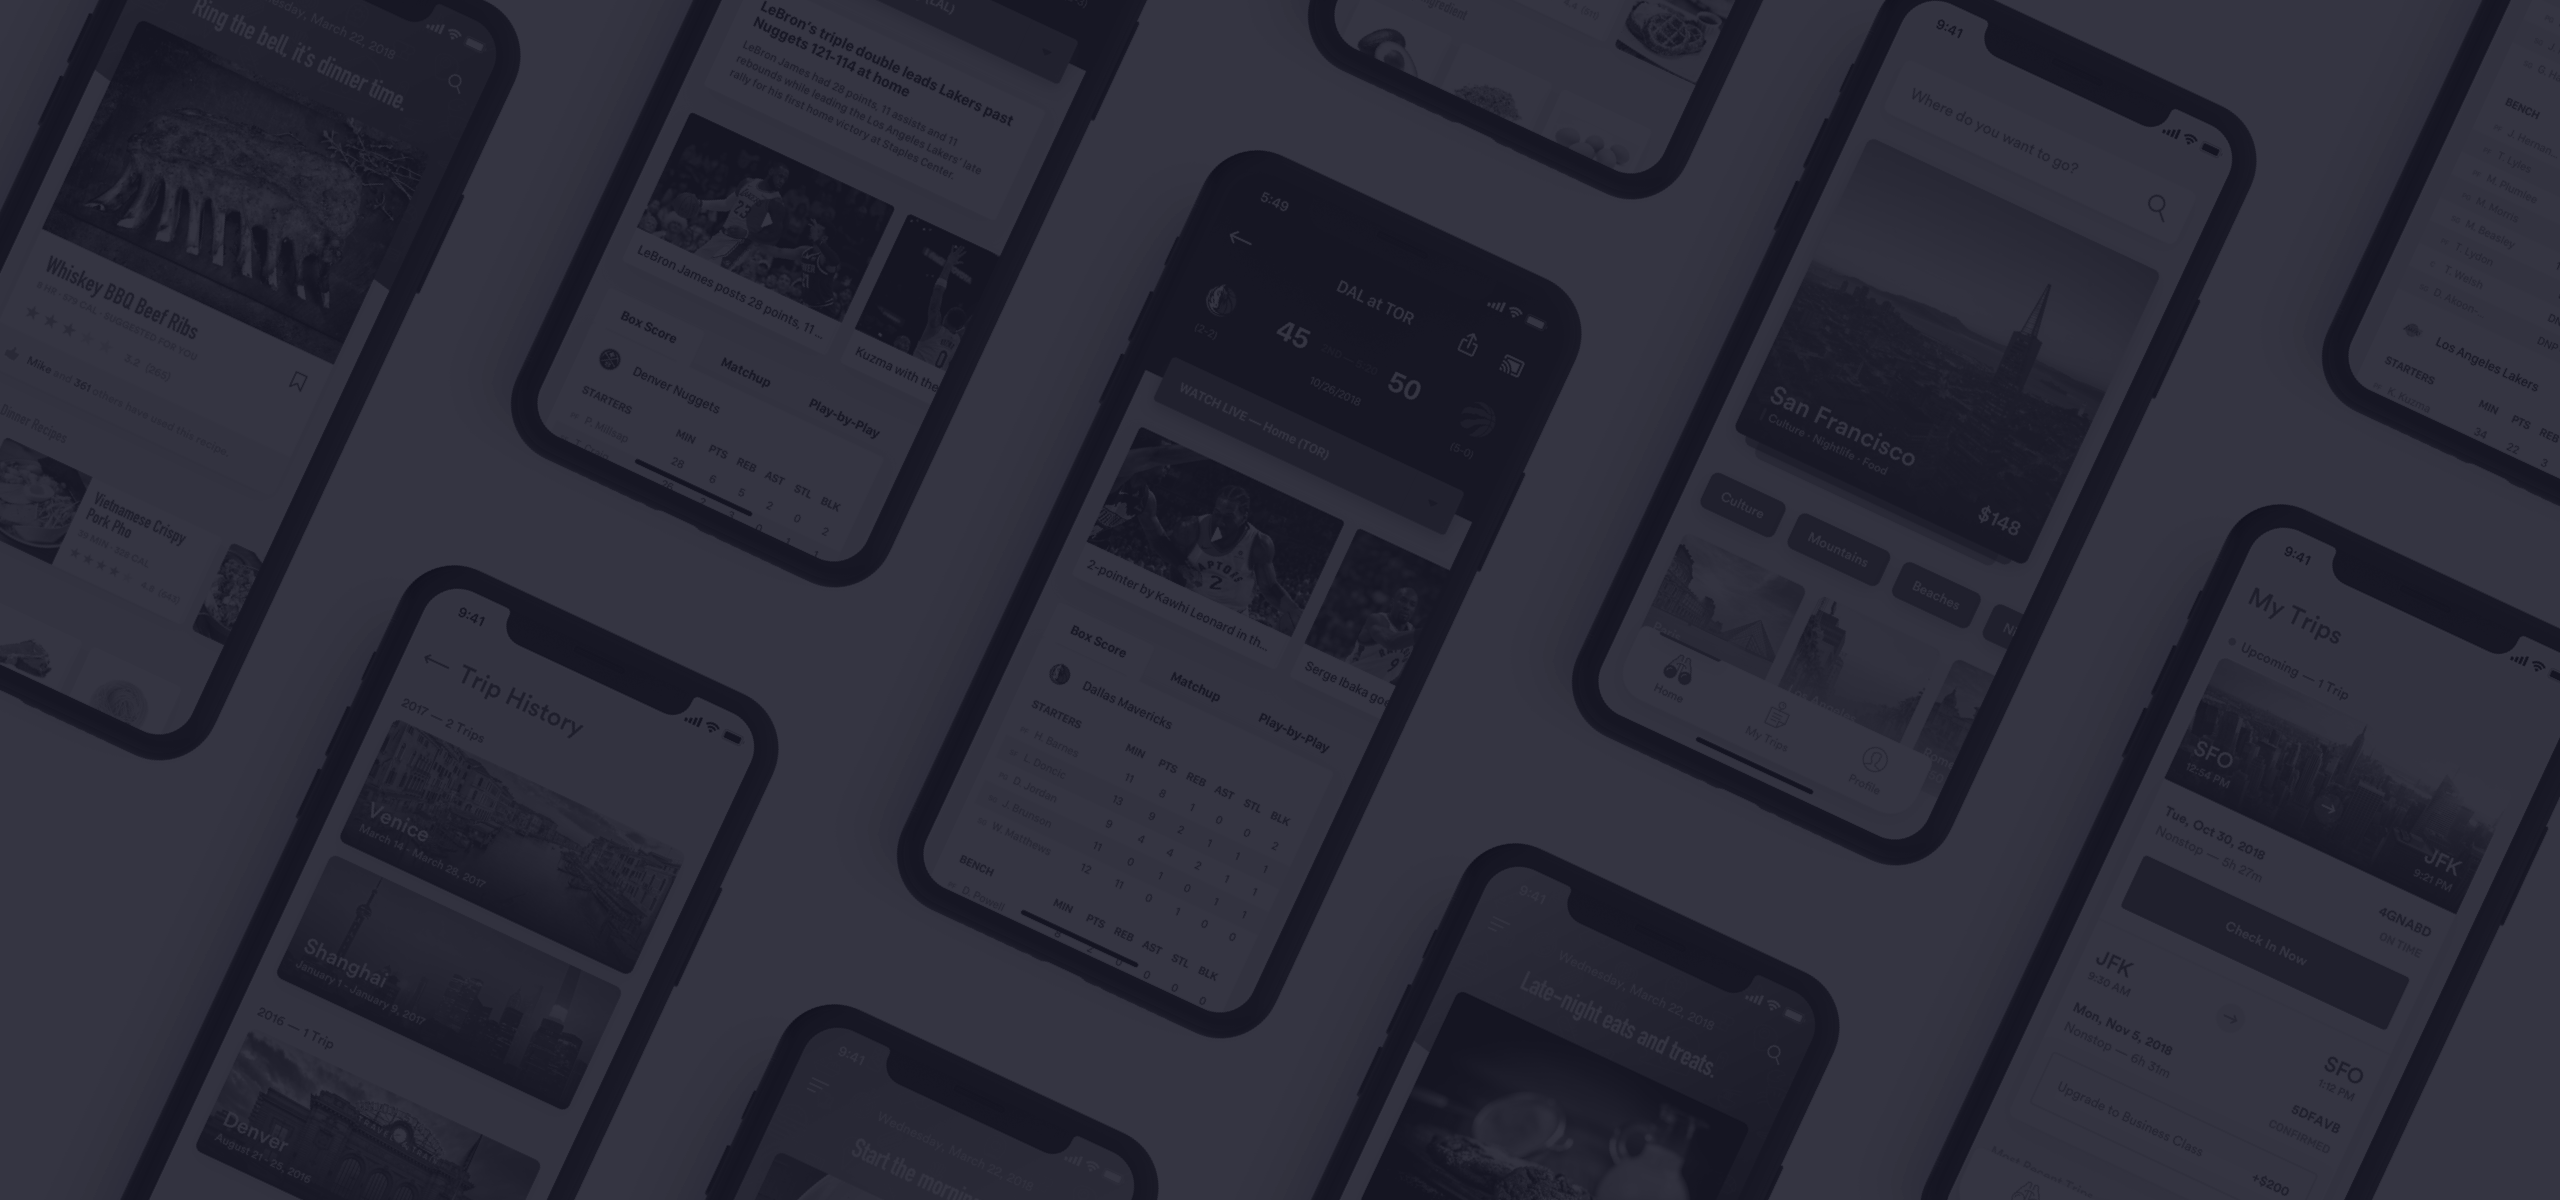 A visual outlet. Dribbble.